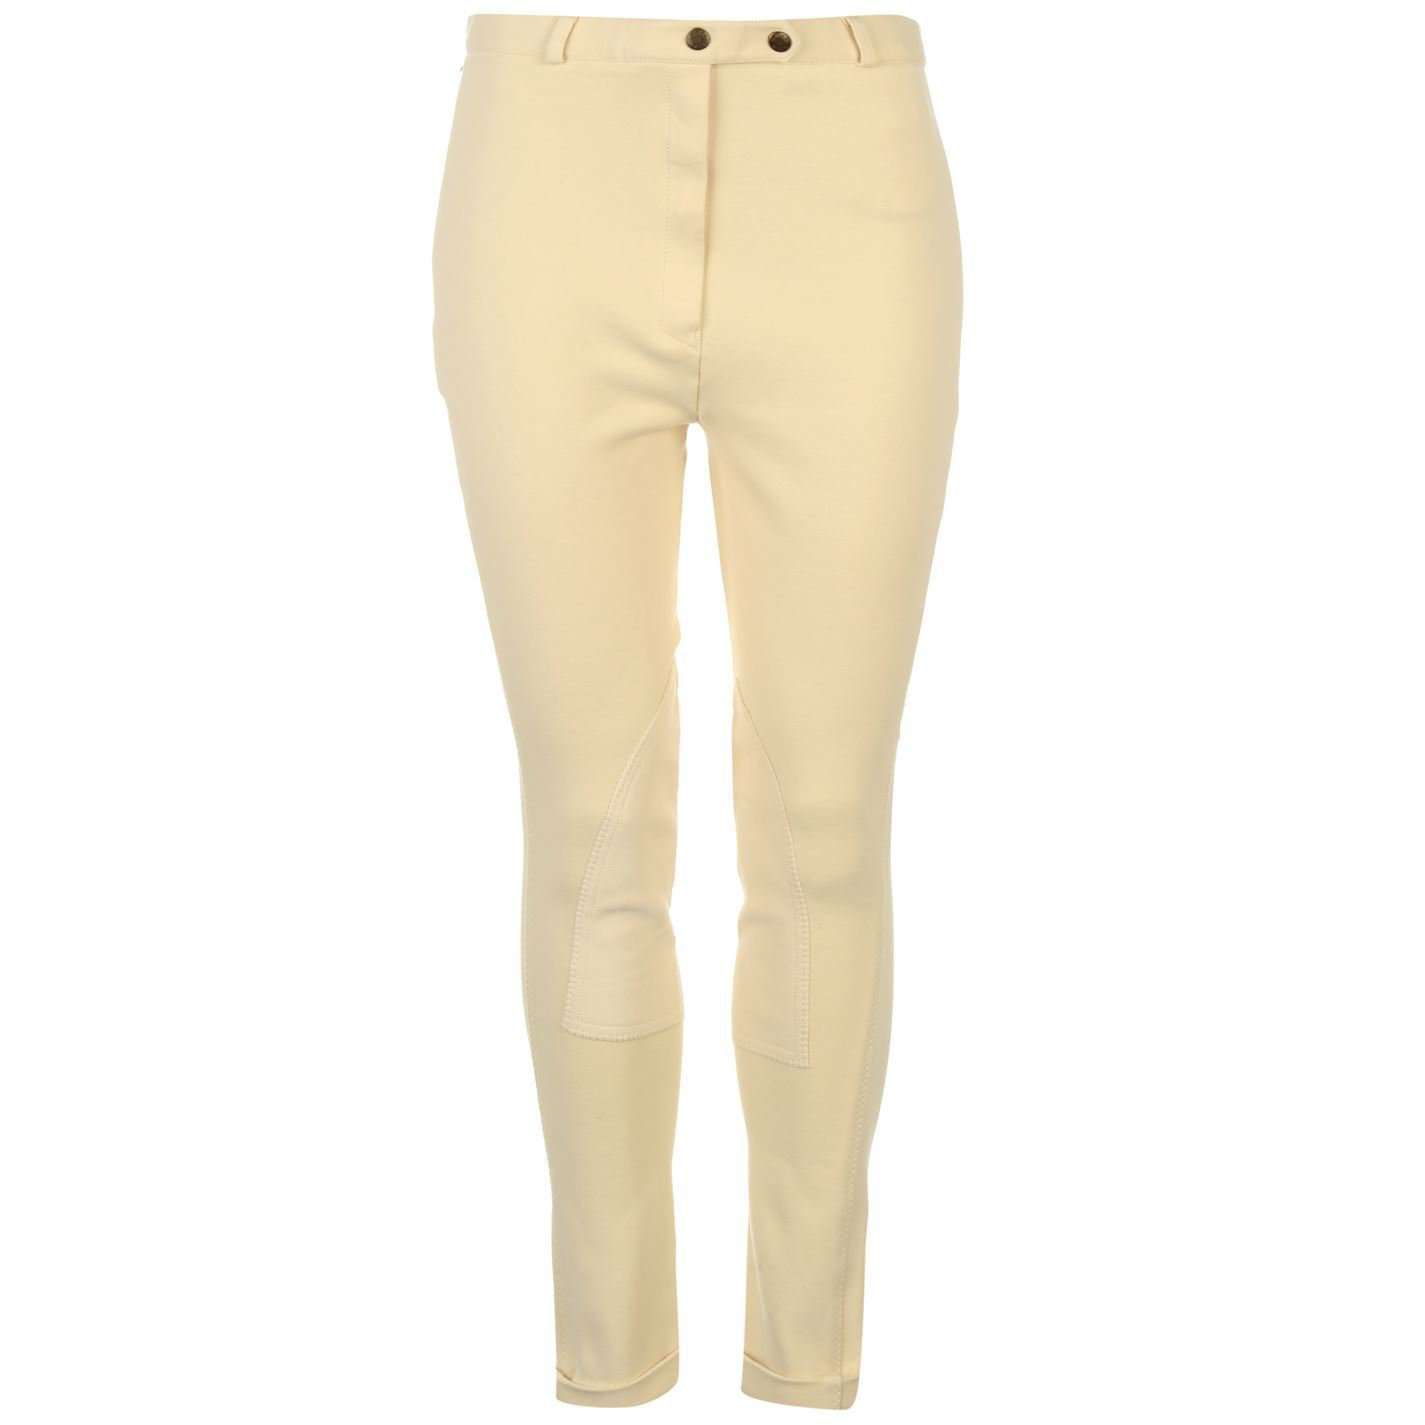 Harry Hall Womens Ladies Atlanta Jodhpurs Pants Trousers Horse Rider Clothing